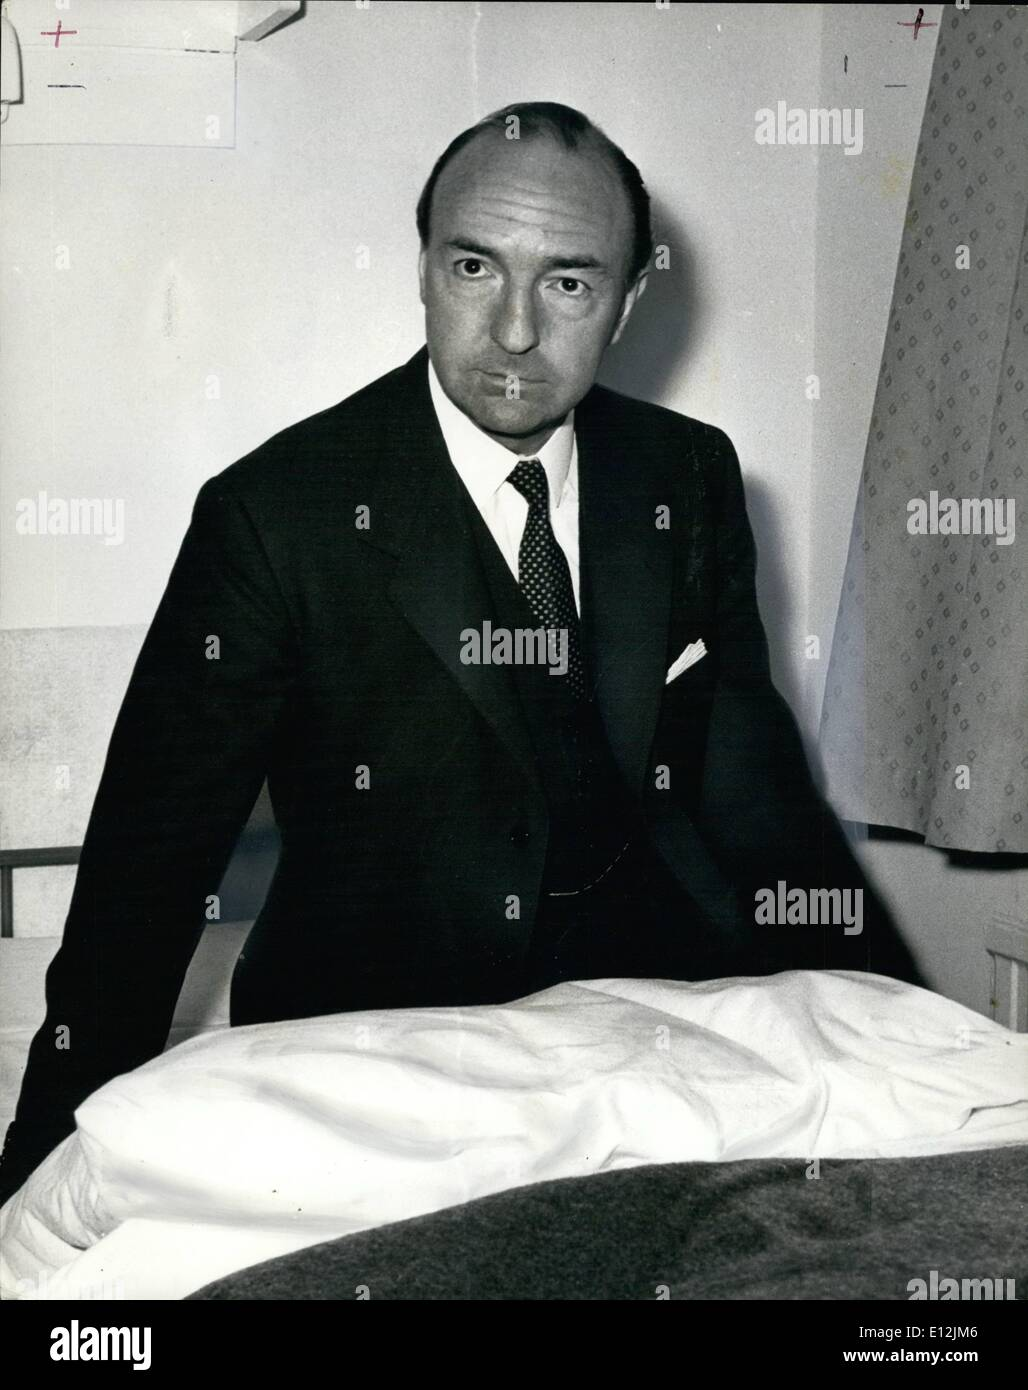 Feb. 24, 2012 - Profumo Now: Profumo - still an immaculate dresser - does all sorts of menial jobs, like making beds in his rehabilitation work. - Stock Image